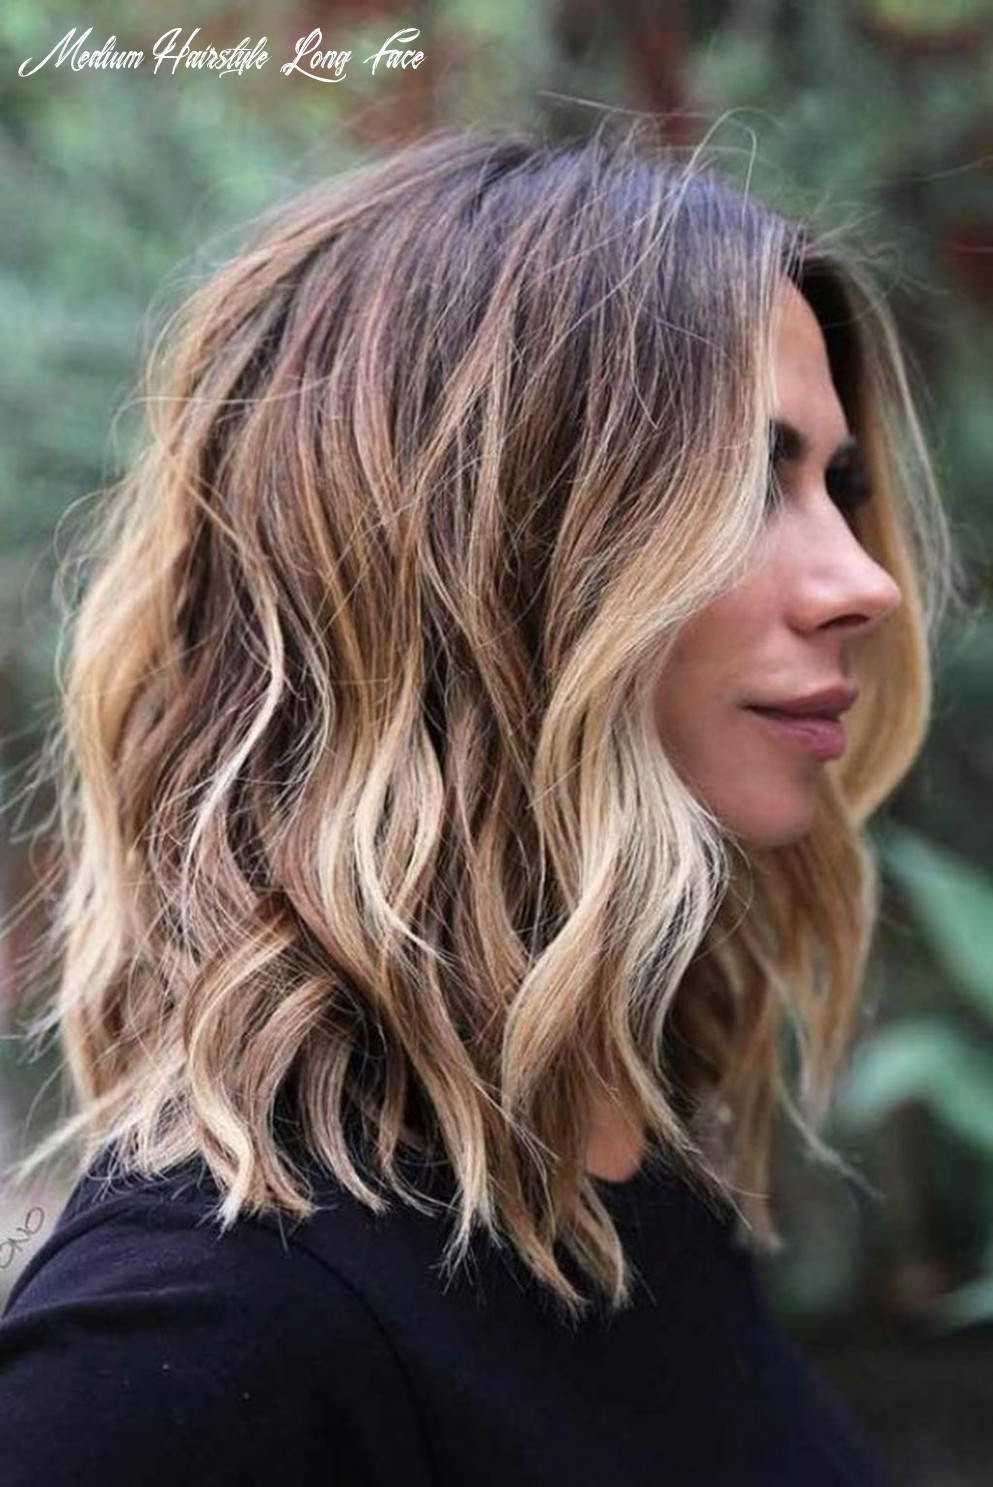 12 latest medium hairstyles ideas for girl in 12 (with images